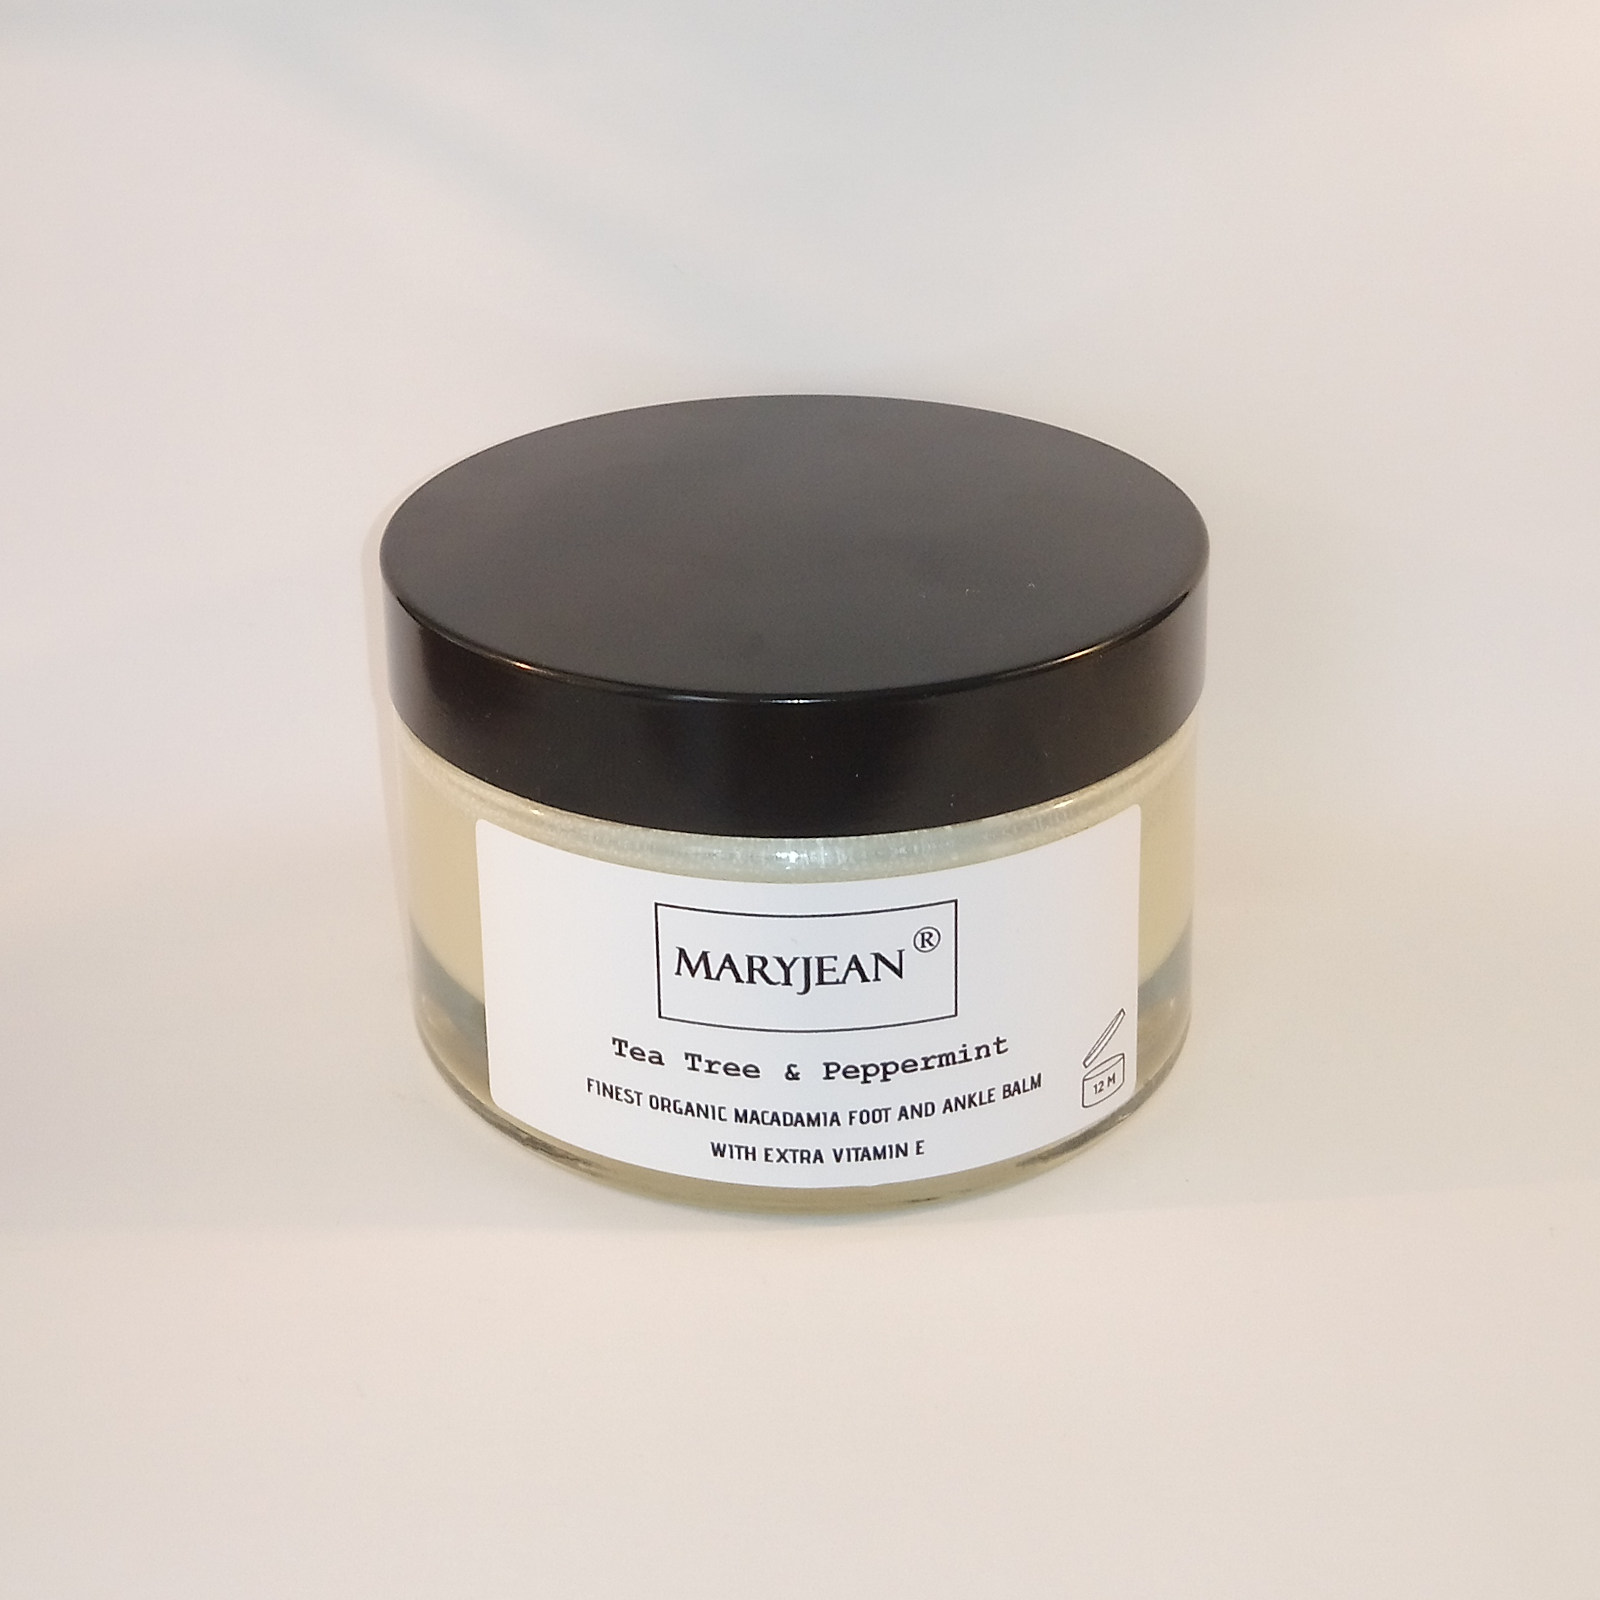 A rich balm for cooling and calming tired sore feet ankles and heels use sparingly as intense moisturisation Organic Macadamia Foot And Ankle Tea Tree Peppermint Balm With Extra Vitamin E